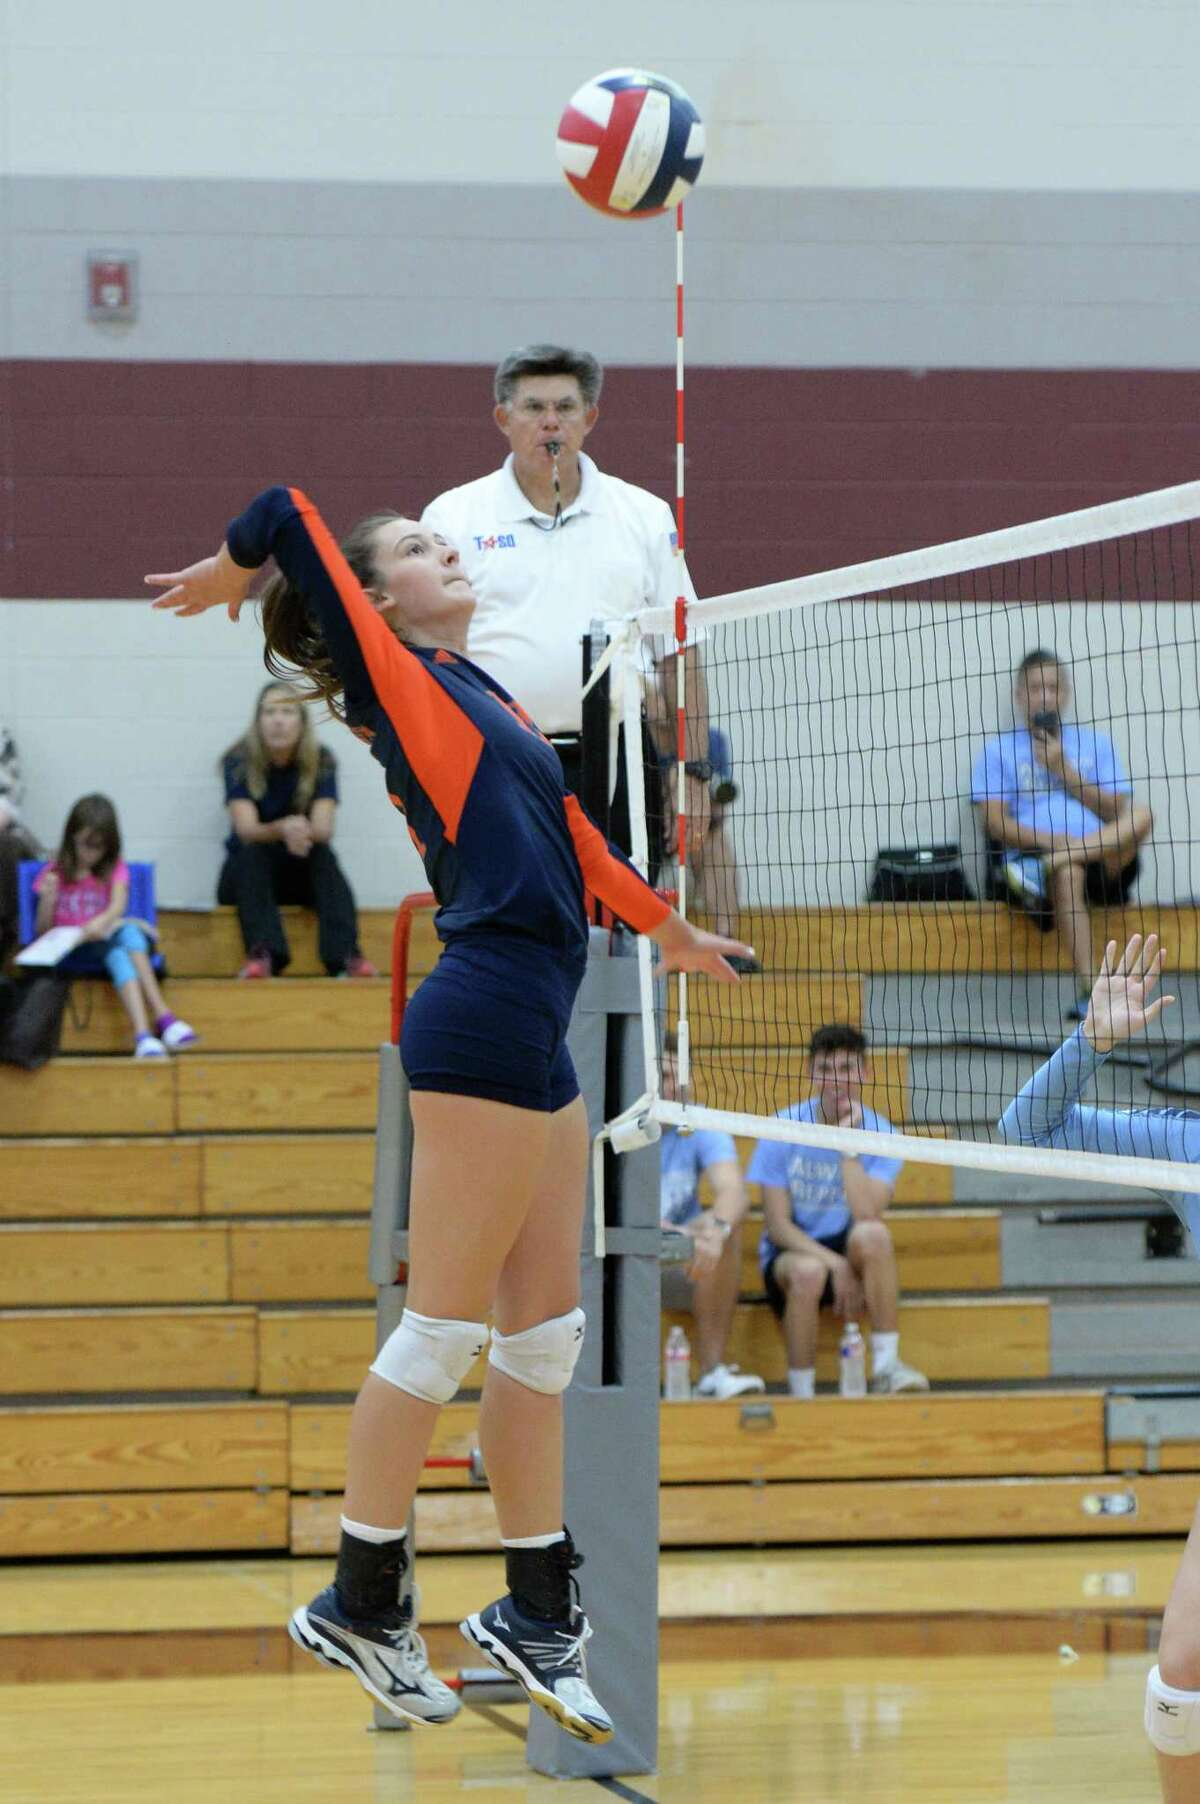 Gabby Collins (11) of Seven Lakes tries for a kill shot in the first set of a high school volleyball game between the Seven Lakes Spartans and the Clements Rangers during the 2017 Cy-Fair ISD/Katy ISD Classic on August 10, 2017 at Cinco Ranch High School, Katy, TX.